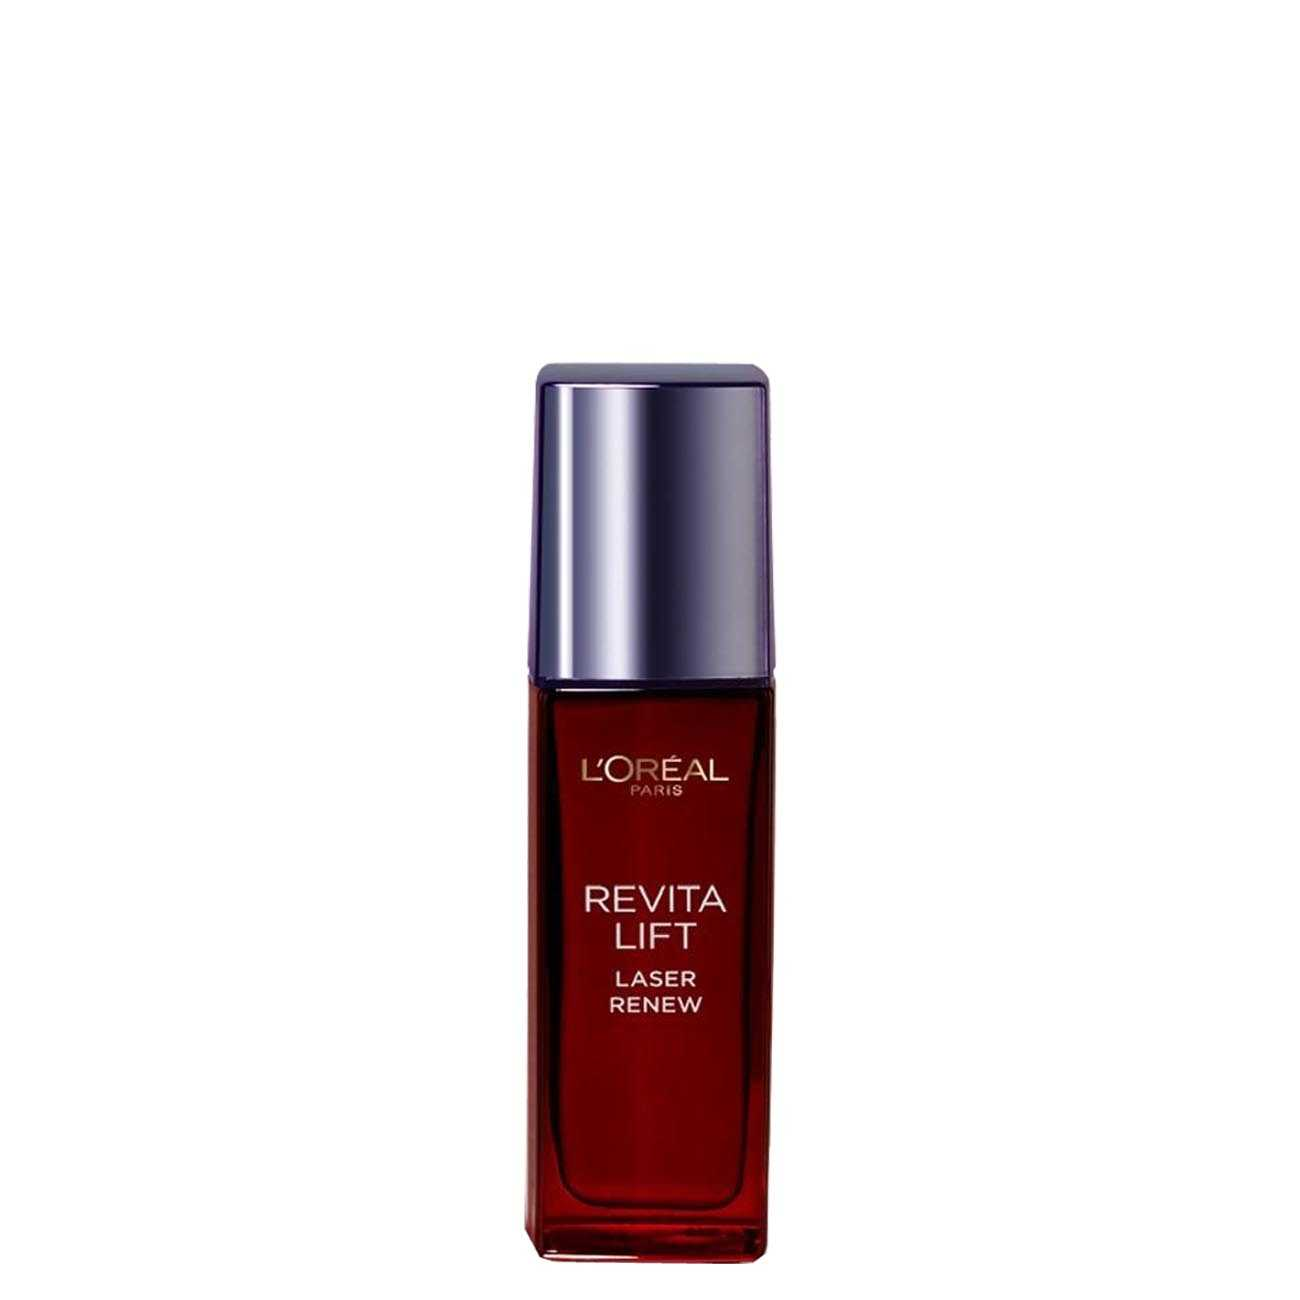 Revitalift Laser Renew 30 Ml L'Oreal imagine 2021 bestvalue.eu